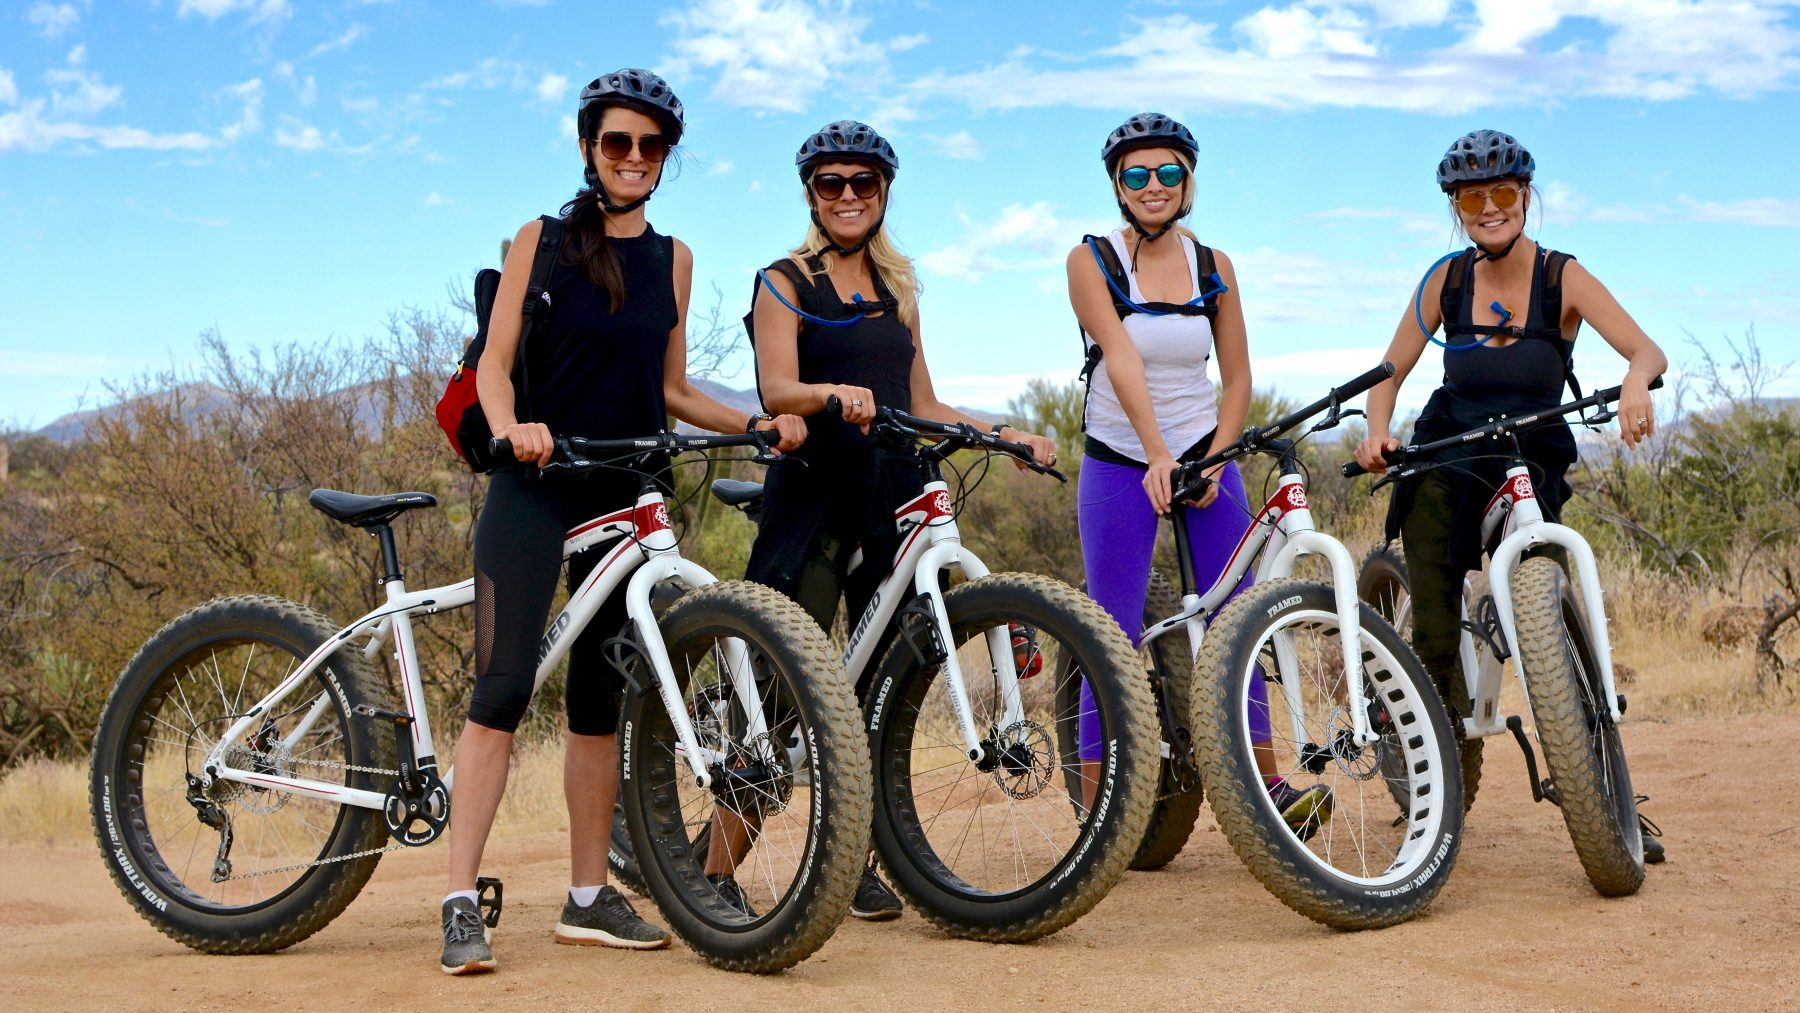 Fat Tire Bike Tour in Scottsdale